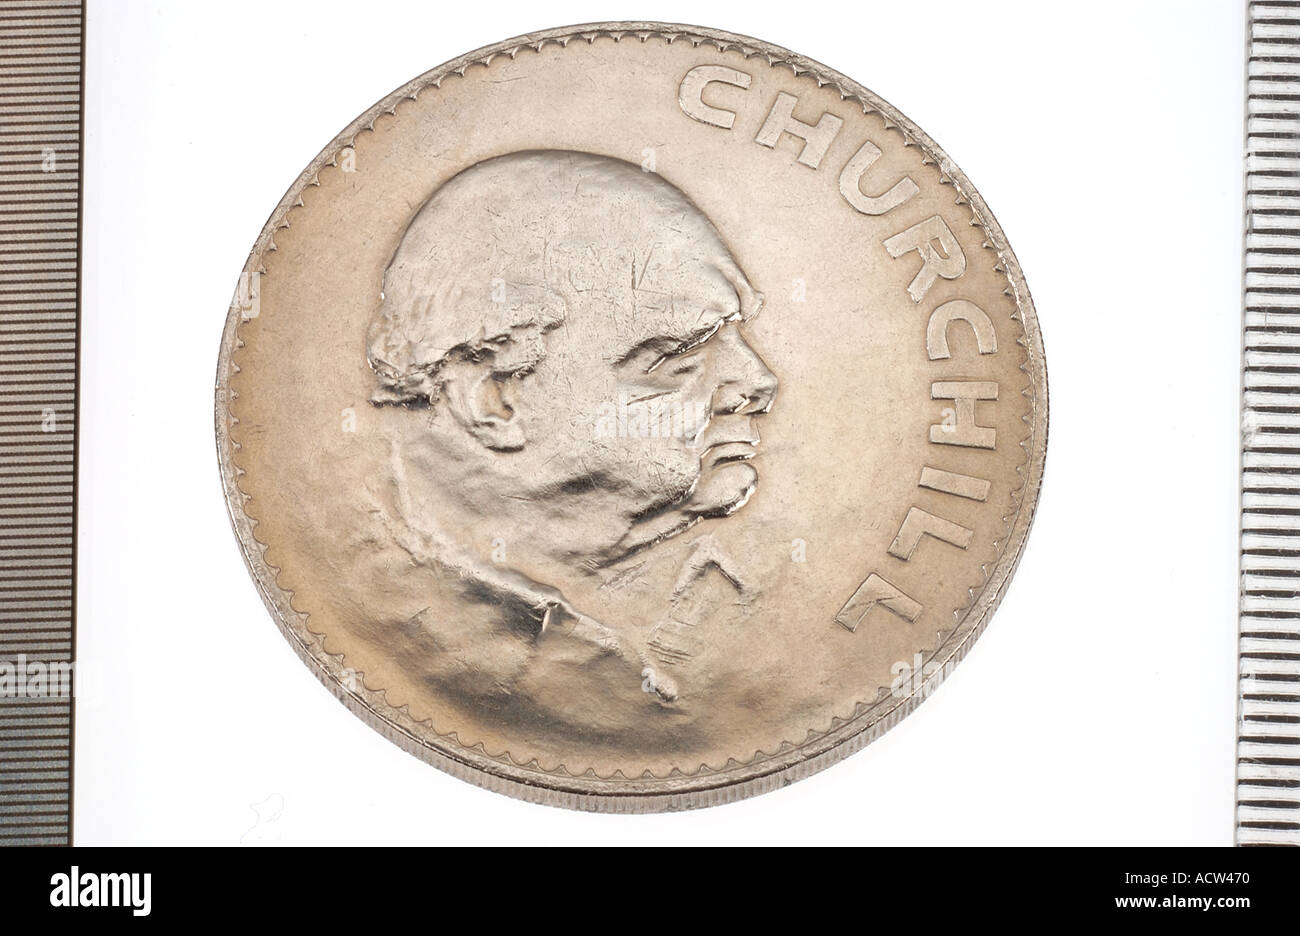 1965 Tales side of Churchill coin - Stock Image